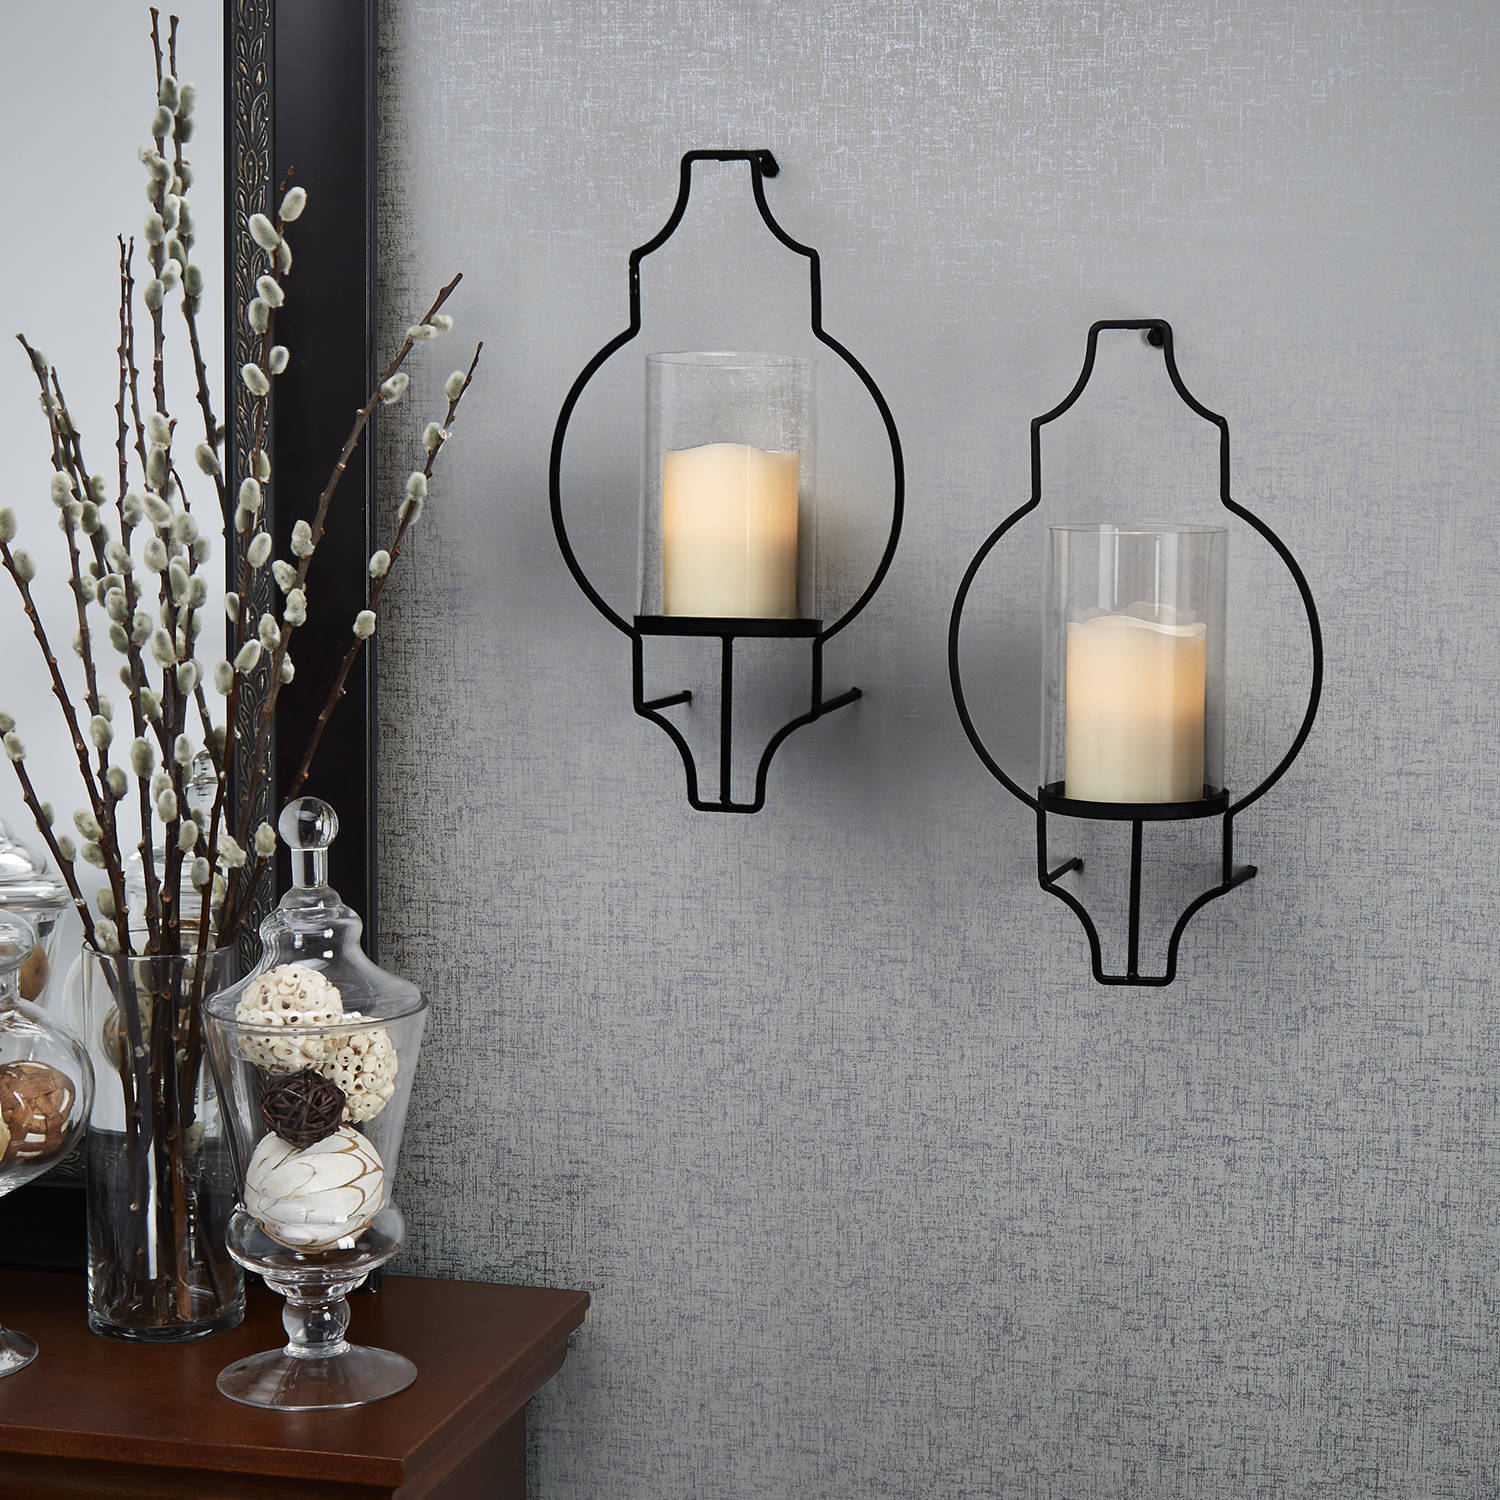 Wall Sconce Replacement Hurricane Glass : Lights.com Flameless Candles Pillar Candles Hurricane Glass Flameless Candle Wall Sconce ...